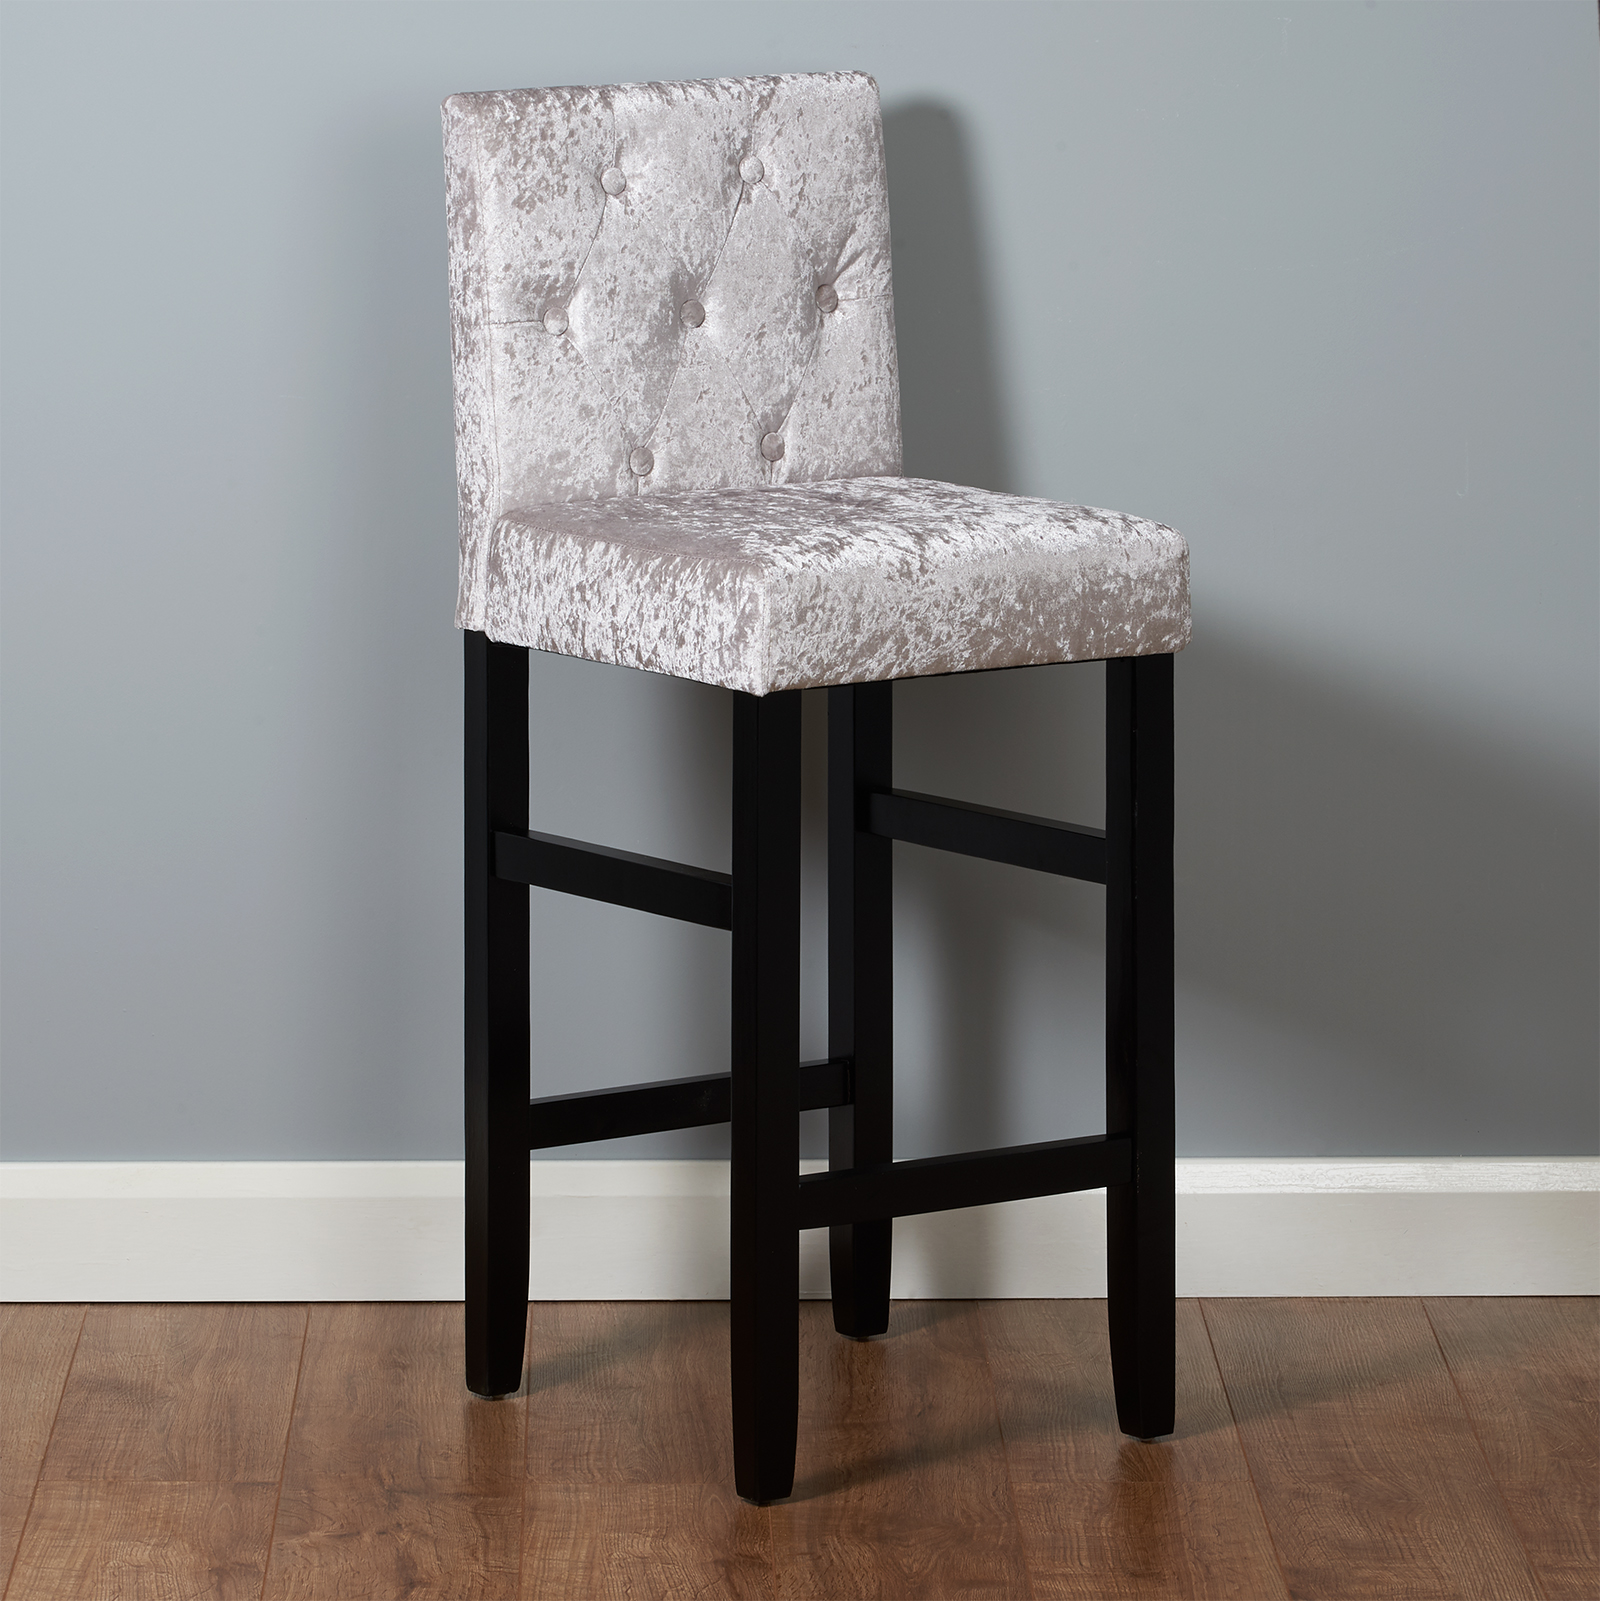 Sentinel Grey Velvet Kitchen Pub Bar Stools Set Of 2 Tall Clic Fabric Dining Chairs